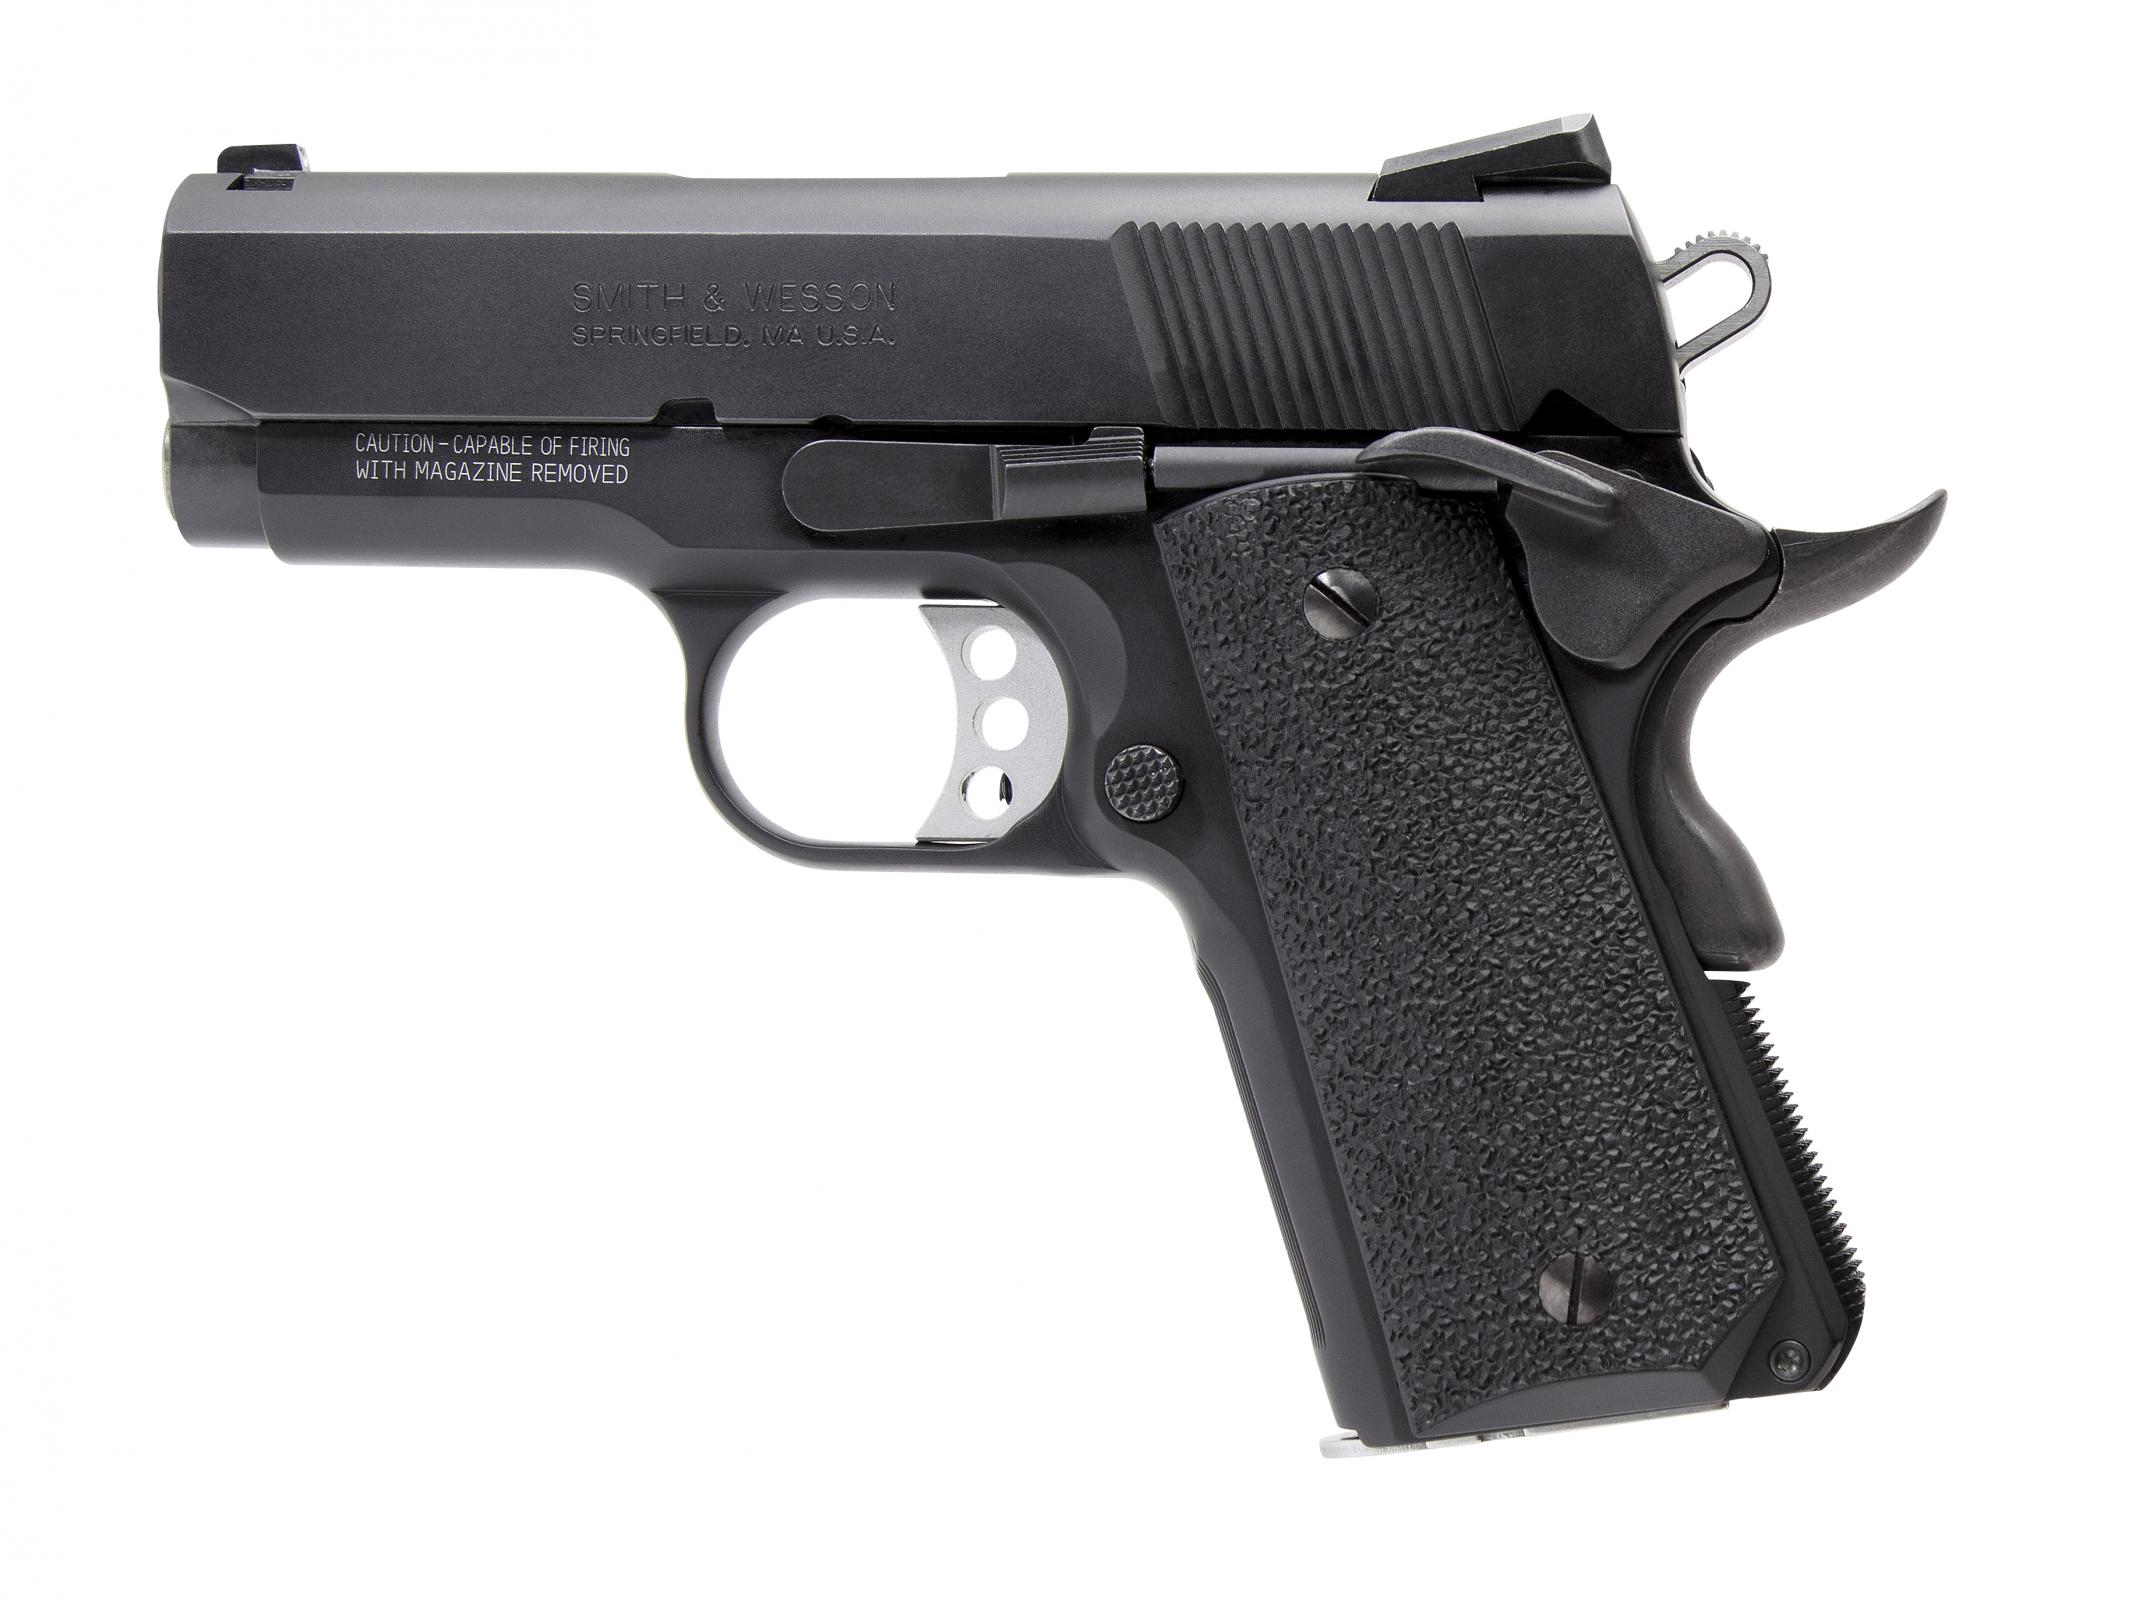 Smith and Wesson SW1911 Pro Series Sub-Compact 9mm